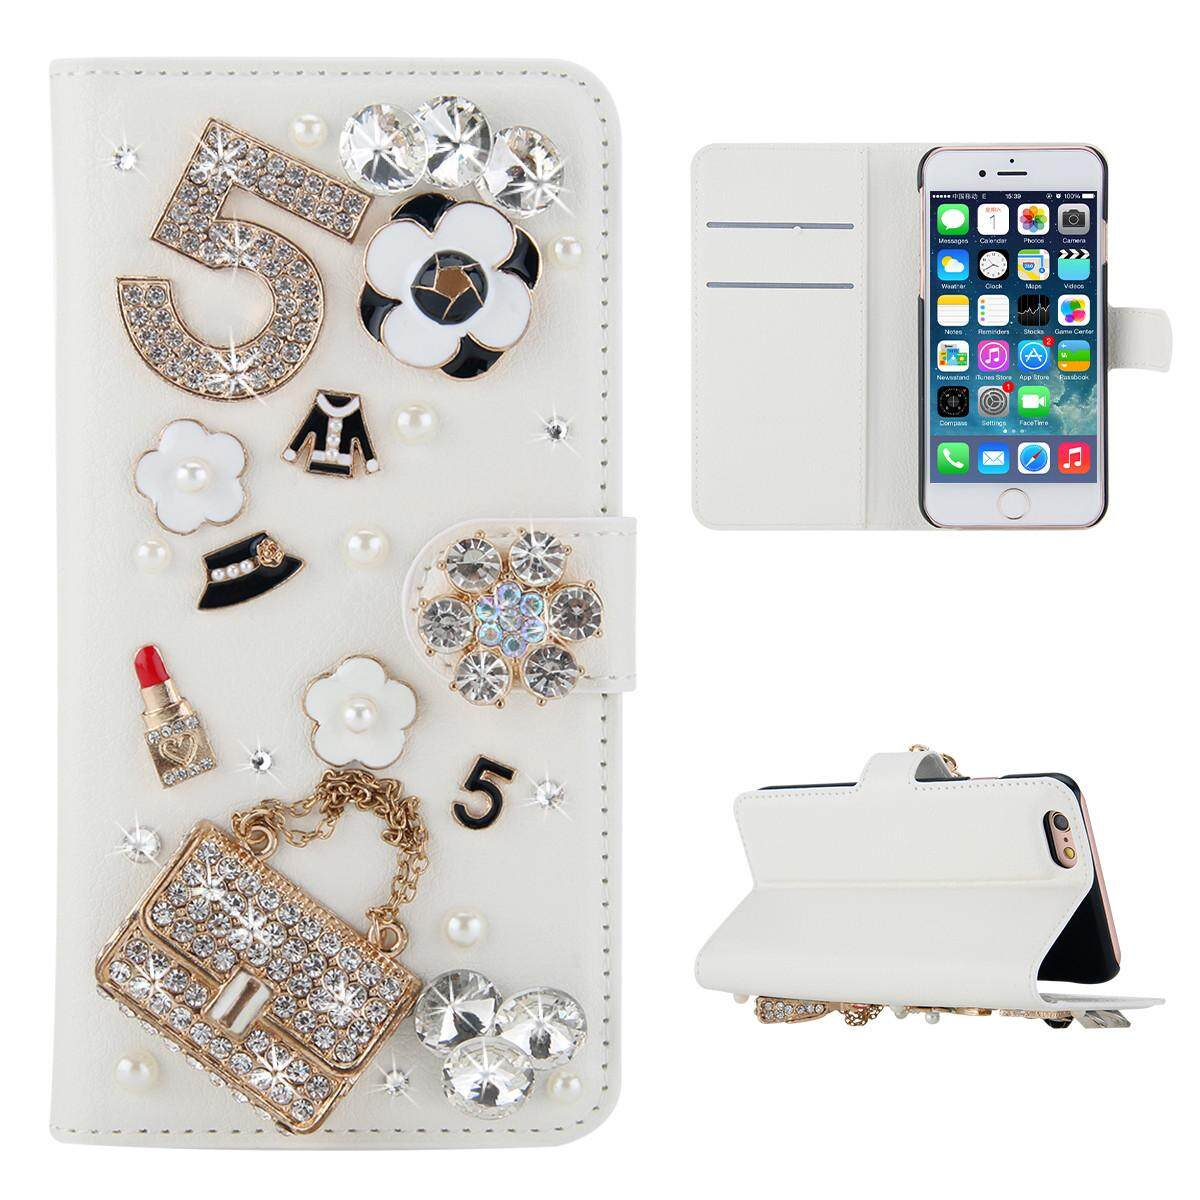 Case for Samsung Galaxy A6 2018 3D Bling Diamond Rhinestones PU Leather Wallet Case Flip Stand Card Slots Cover with Magnetic Closure - intl